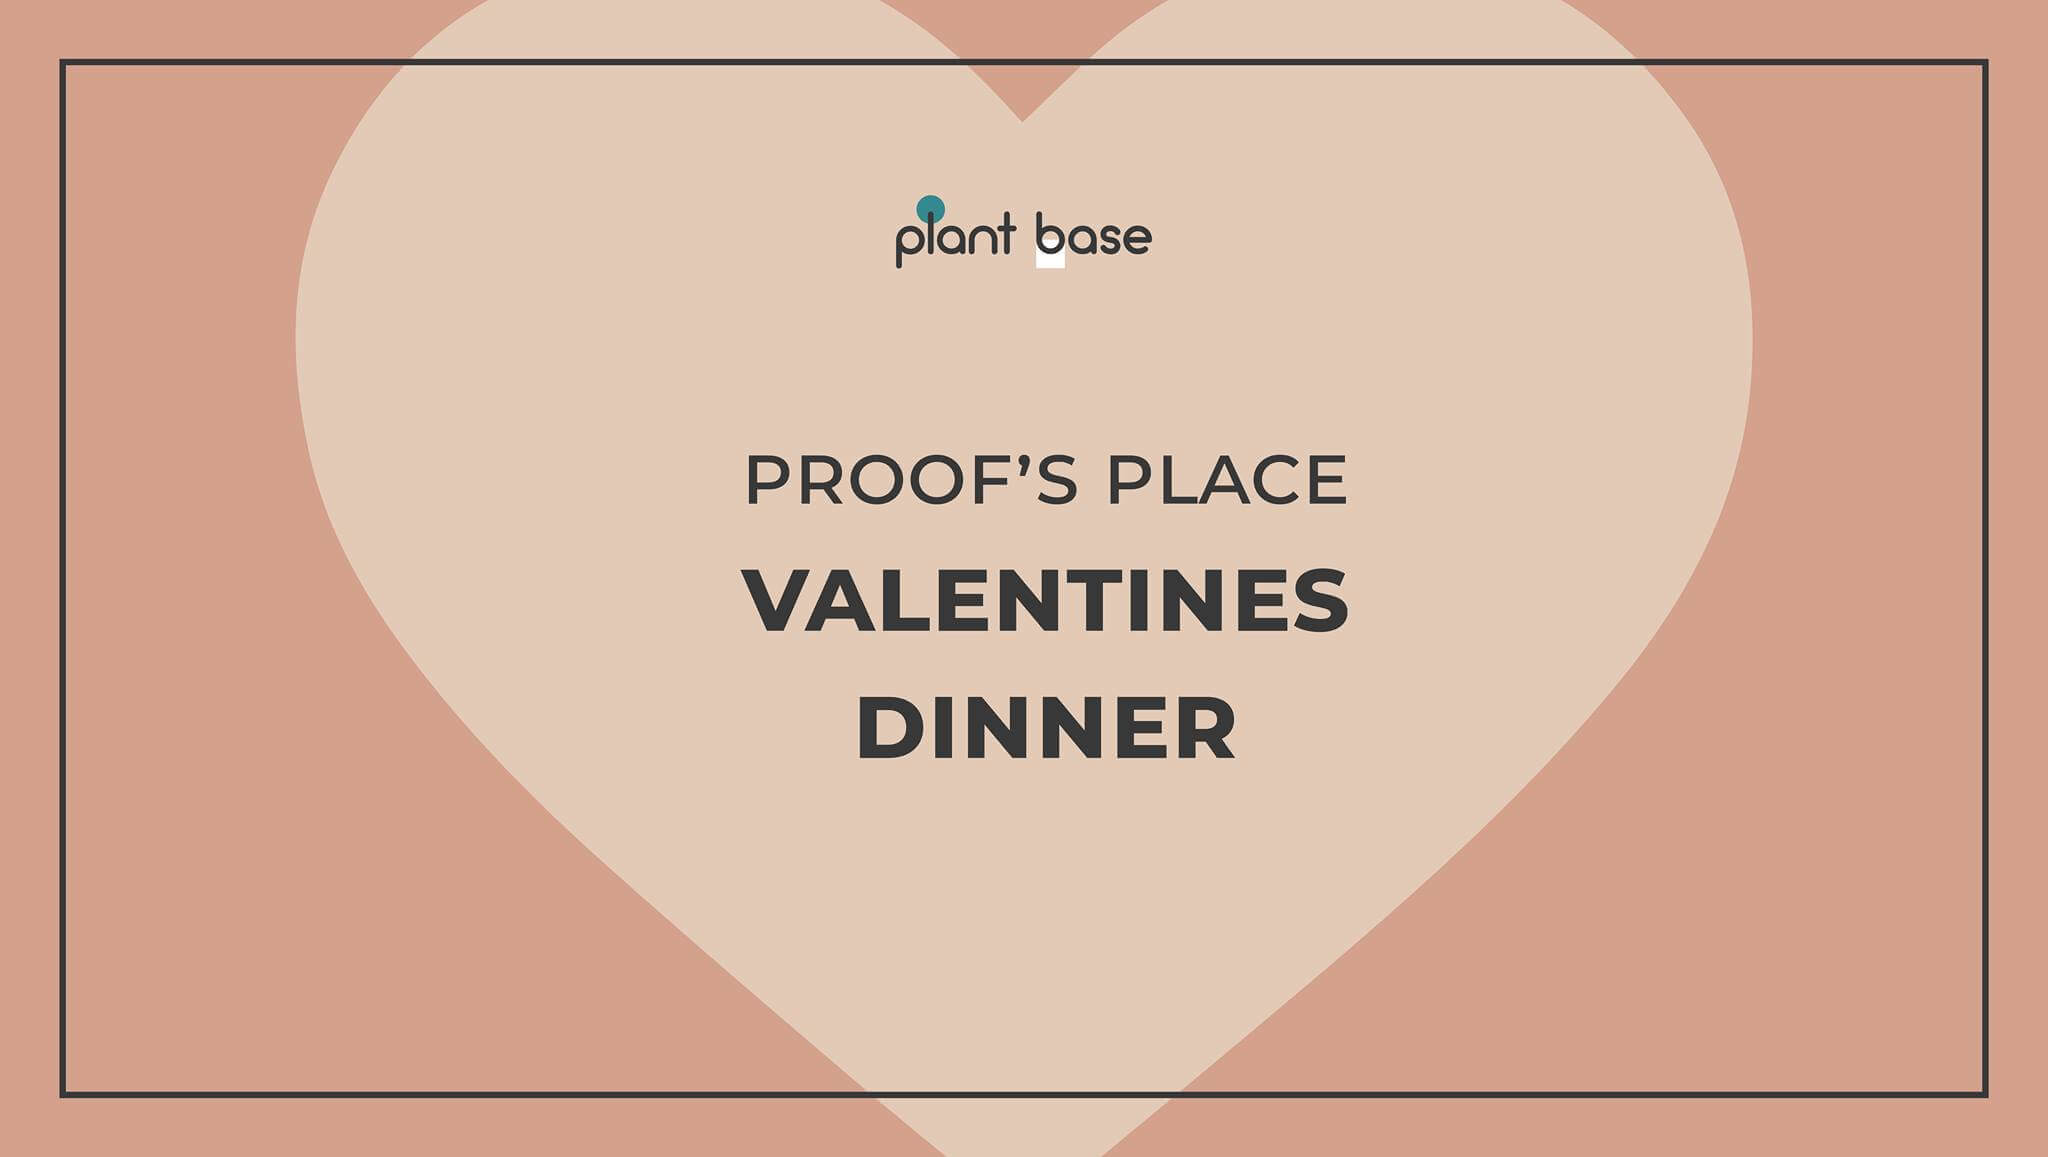 Proof's Place Valentines Dinner